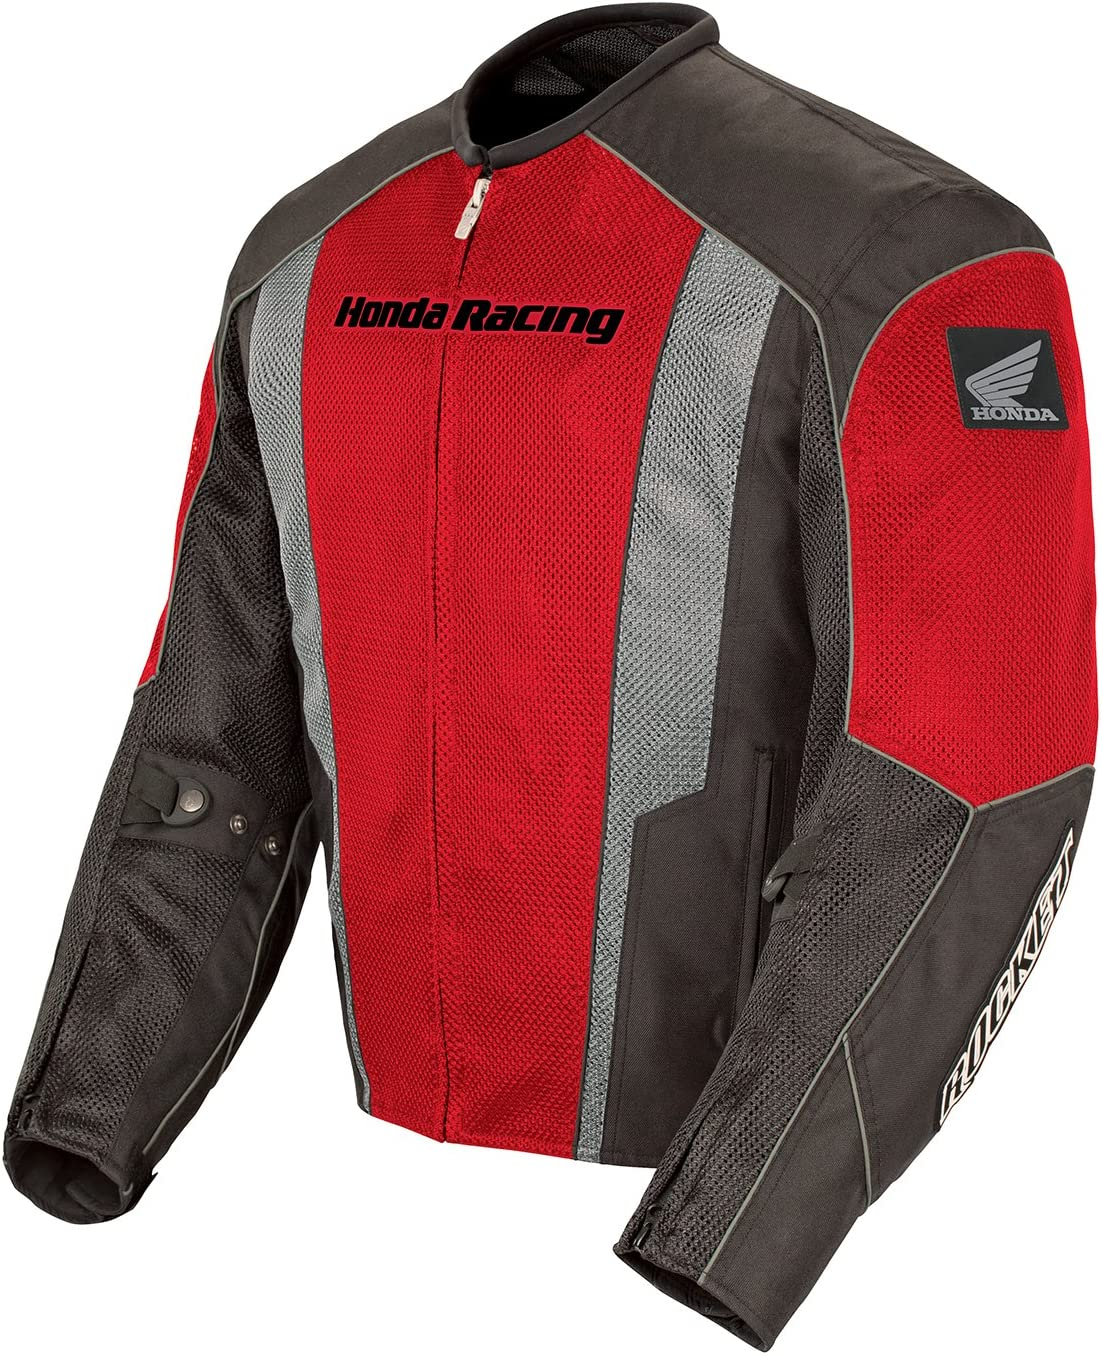 HONDA CBR MOTORCYCLE LEATHER RACING JACKET FULL BODY PROTECTION CE APPROVED